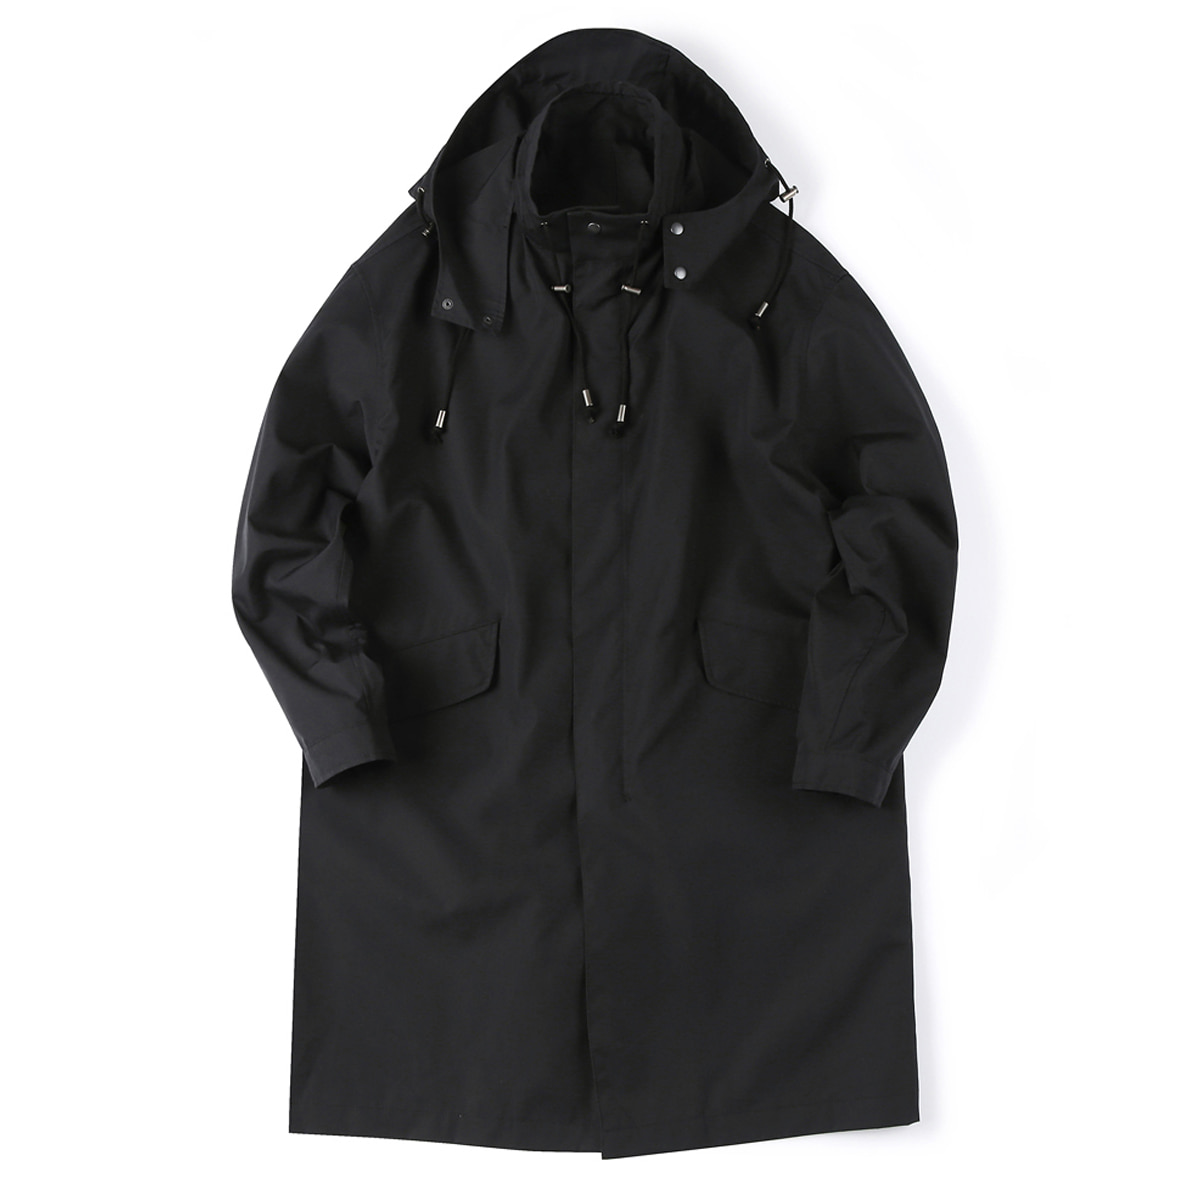 [SHIRTER] NANO WEATHER COAT 'BLACK'